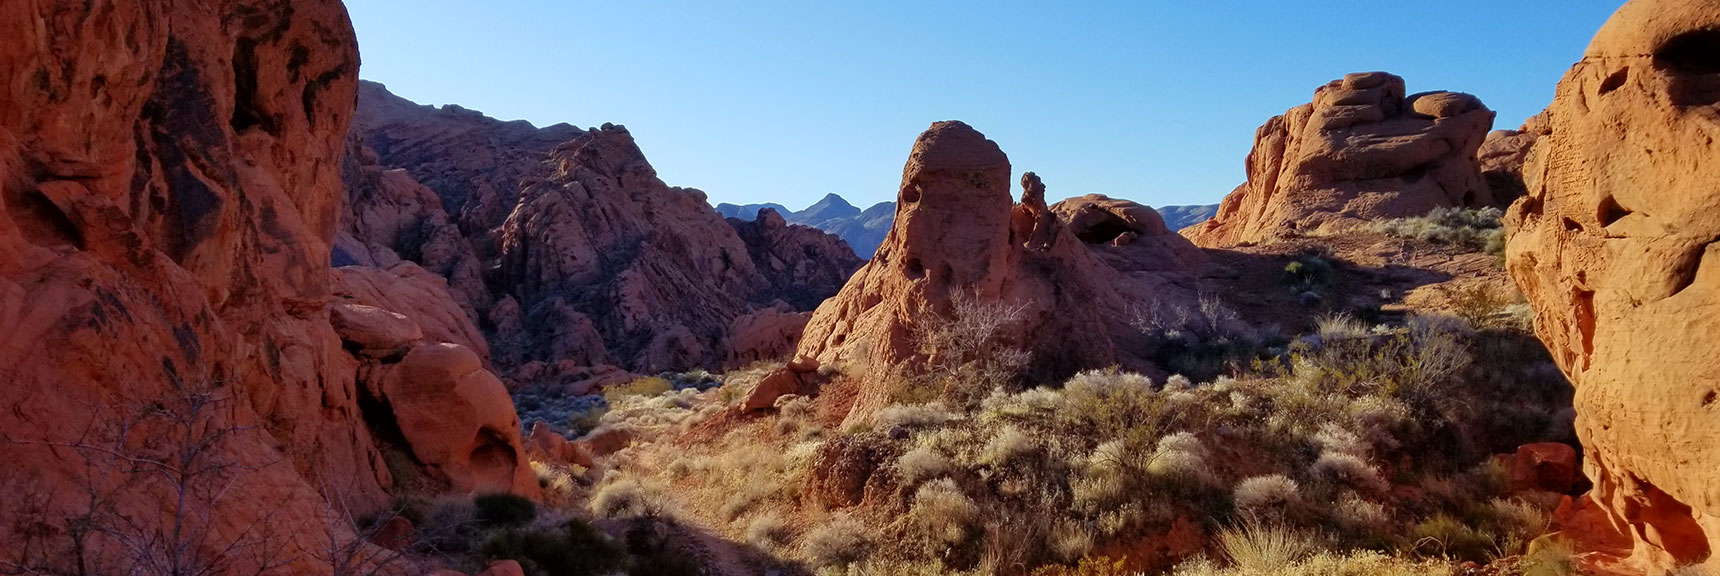 Looking Back South Through the Upper Pass on Prospect Trail in Valley of Fire State Park, Nevada